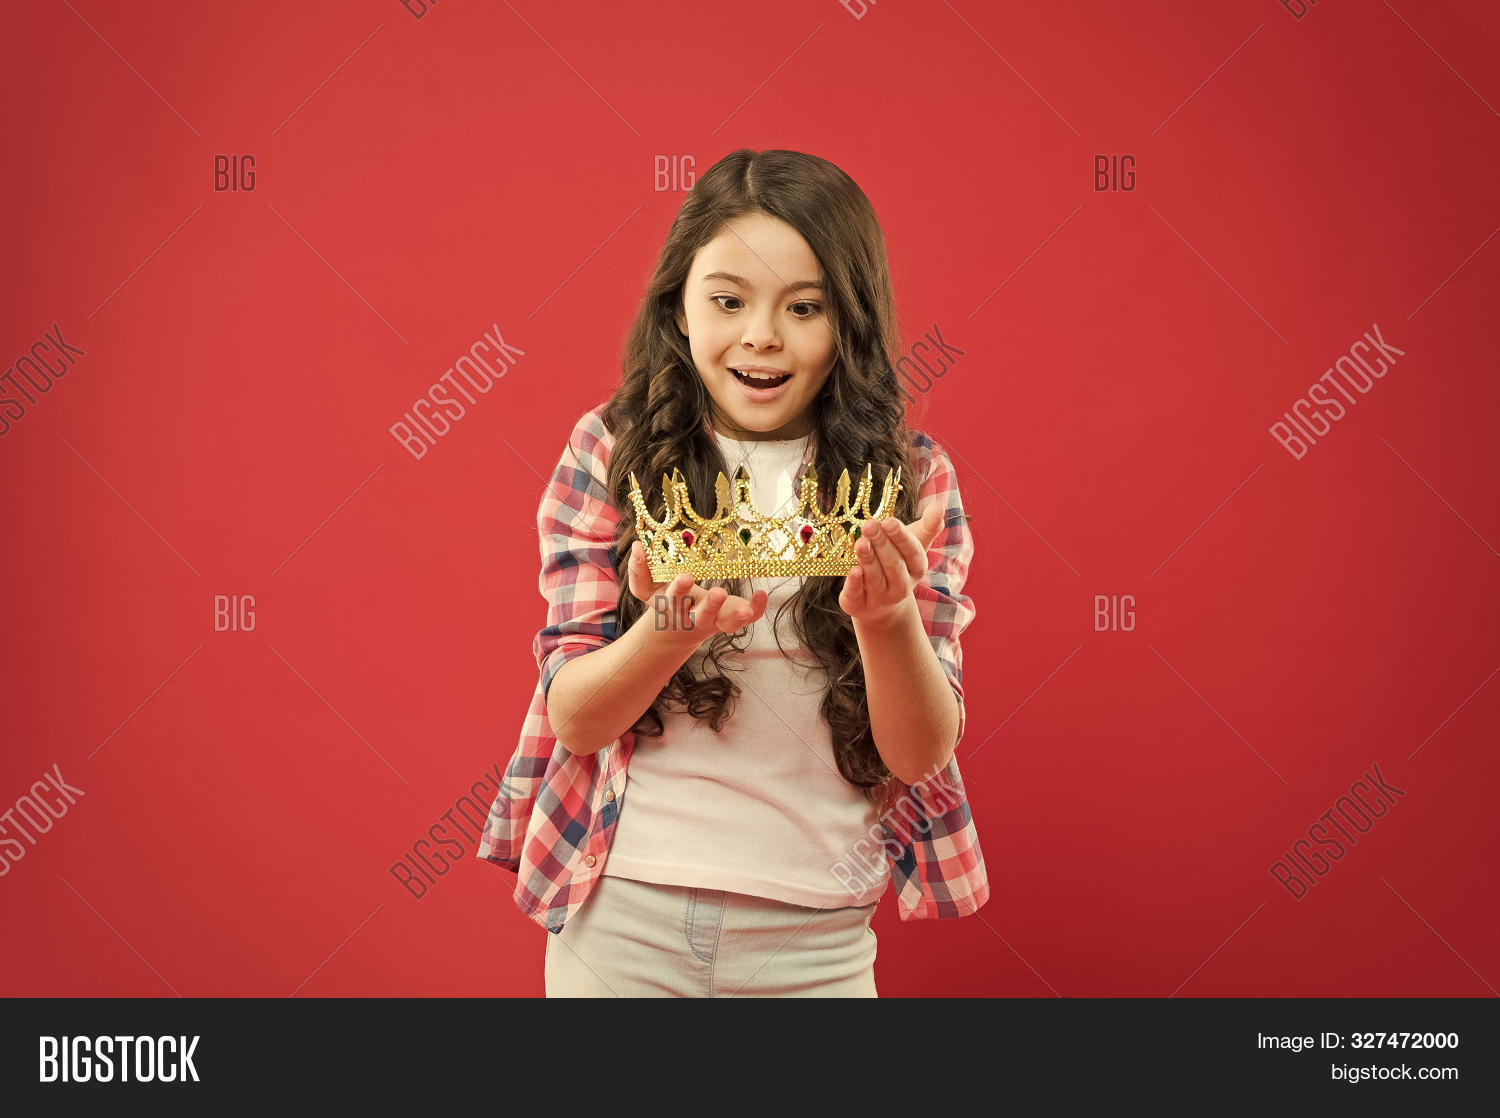 Luxury And Elegance. Small Child Holding Luxury Crown Jewel On Red Background. Successful Little Gil